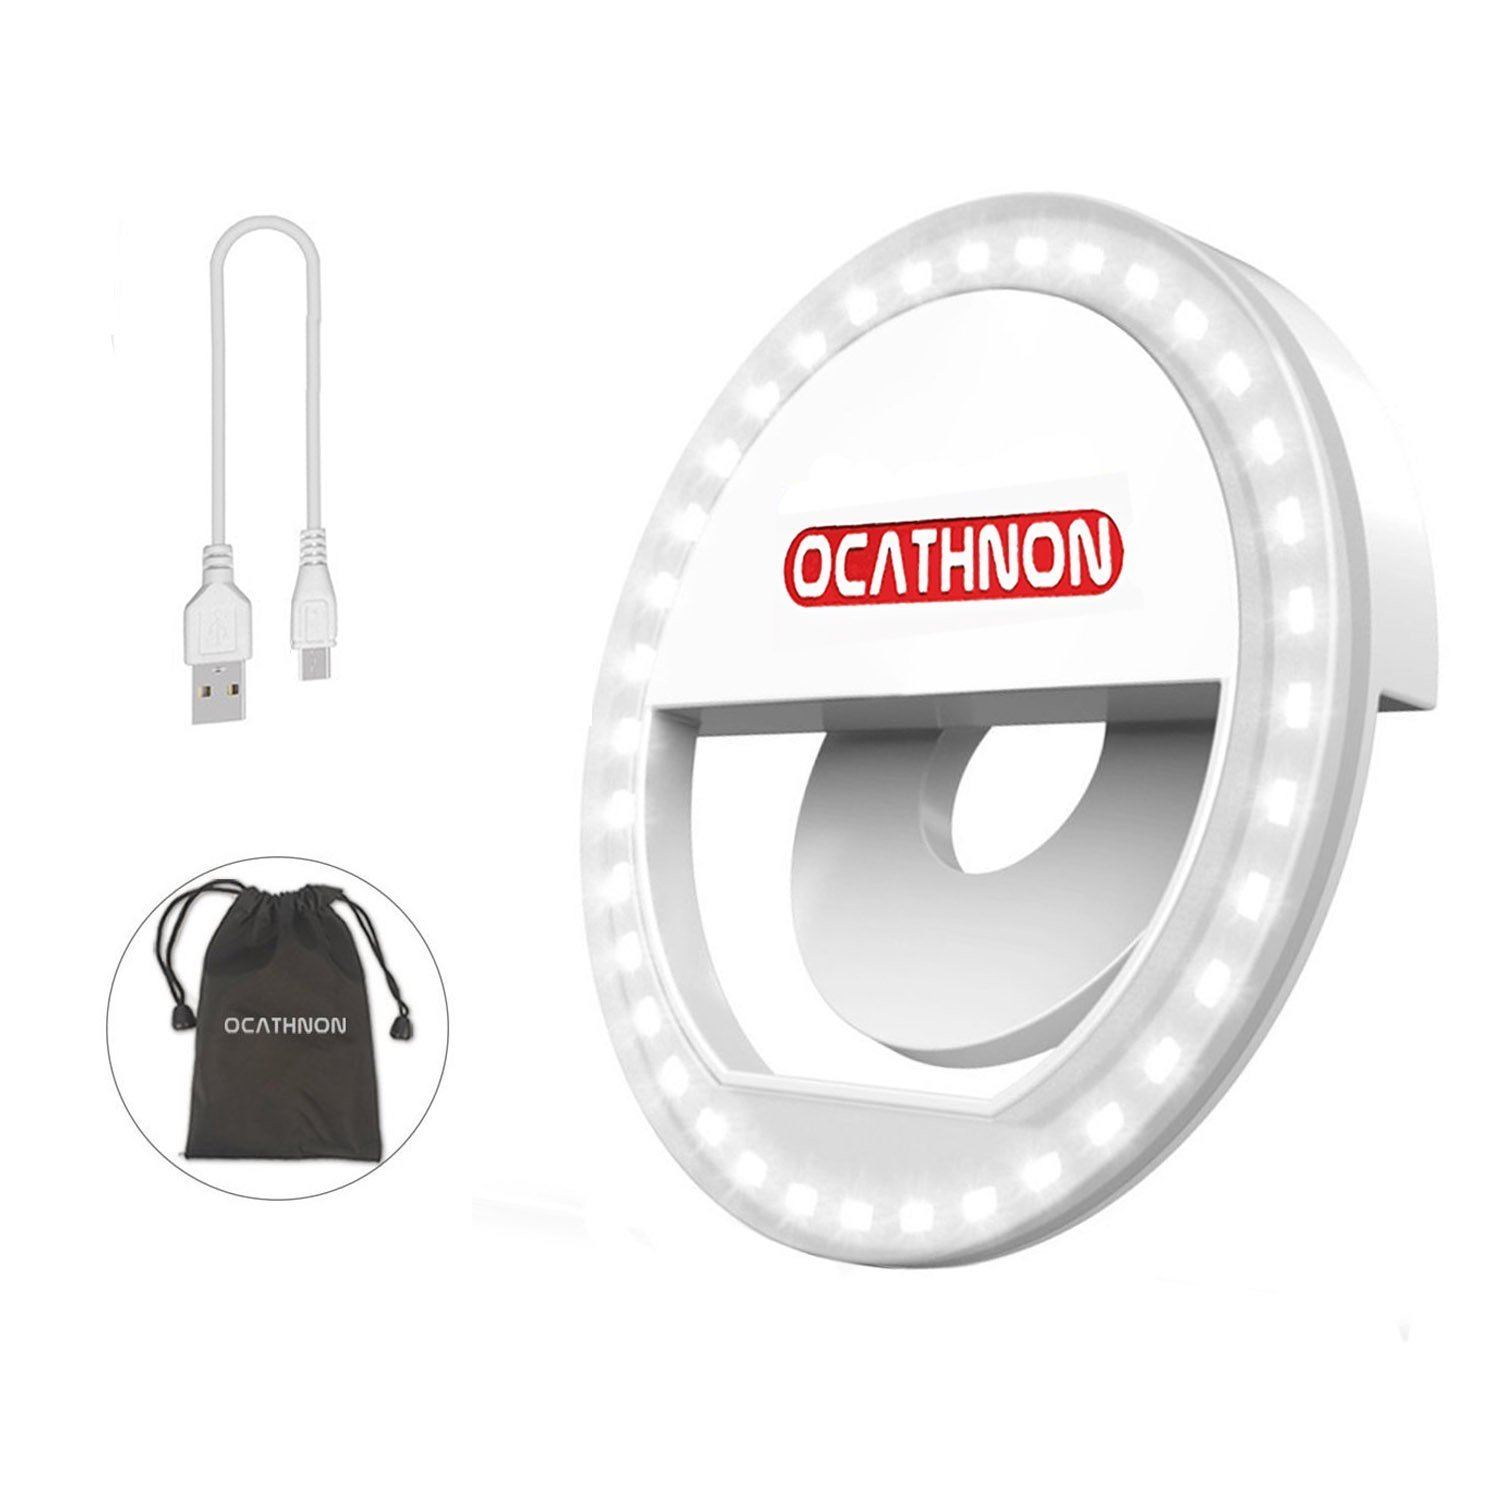 Selfie Ring Light for iPhone,Clip on Selfie Lights for Girls Makeup Light,36LED Rechargeable Selfie Fill Light For iPhone Samsung Galaxy & Other Smartphones Vlogging Camera Video Photography - White